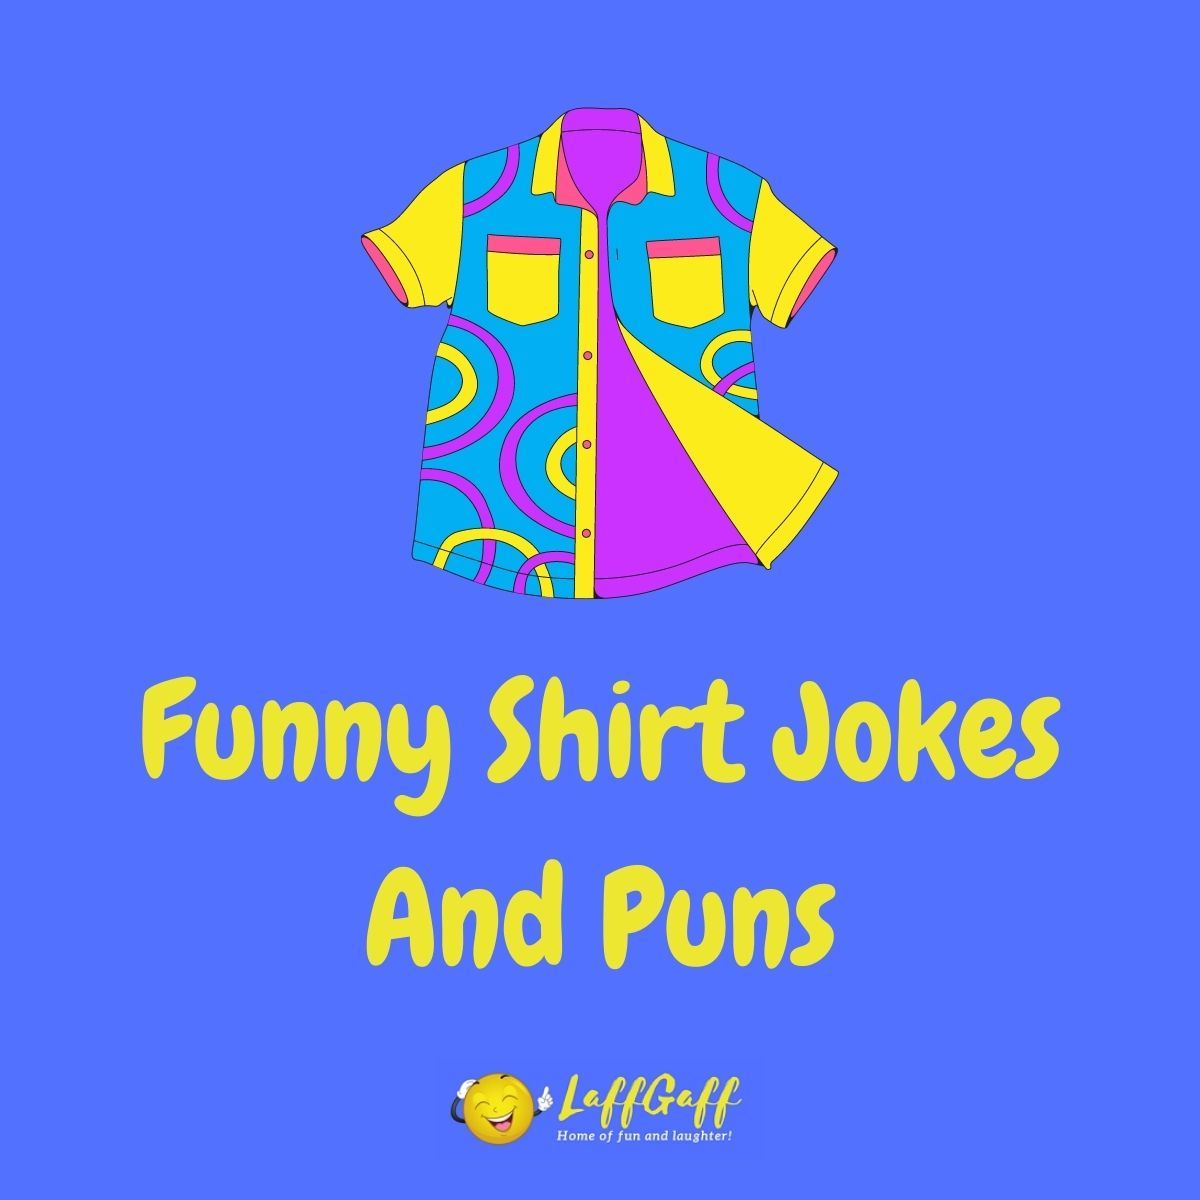 Featured image for a page of funny shirt jokes and puns.